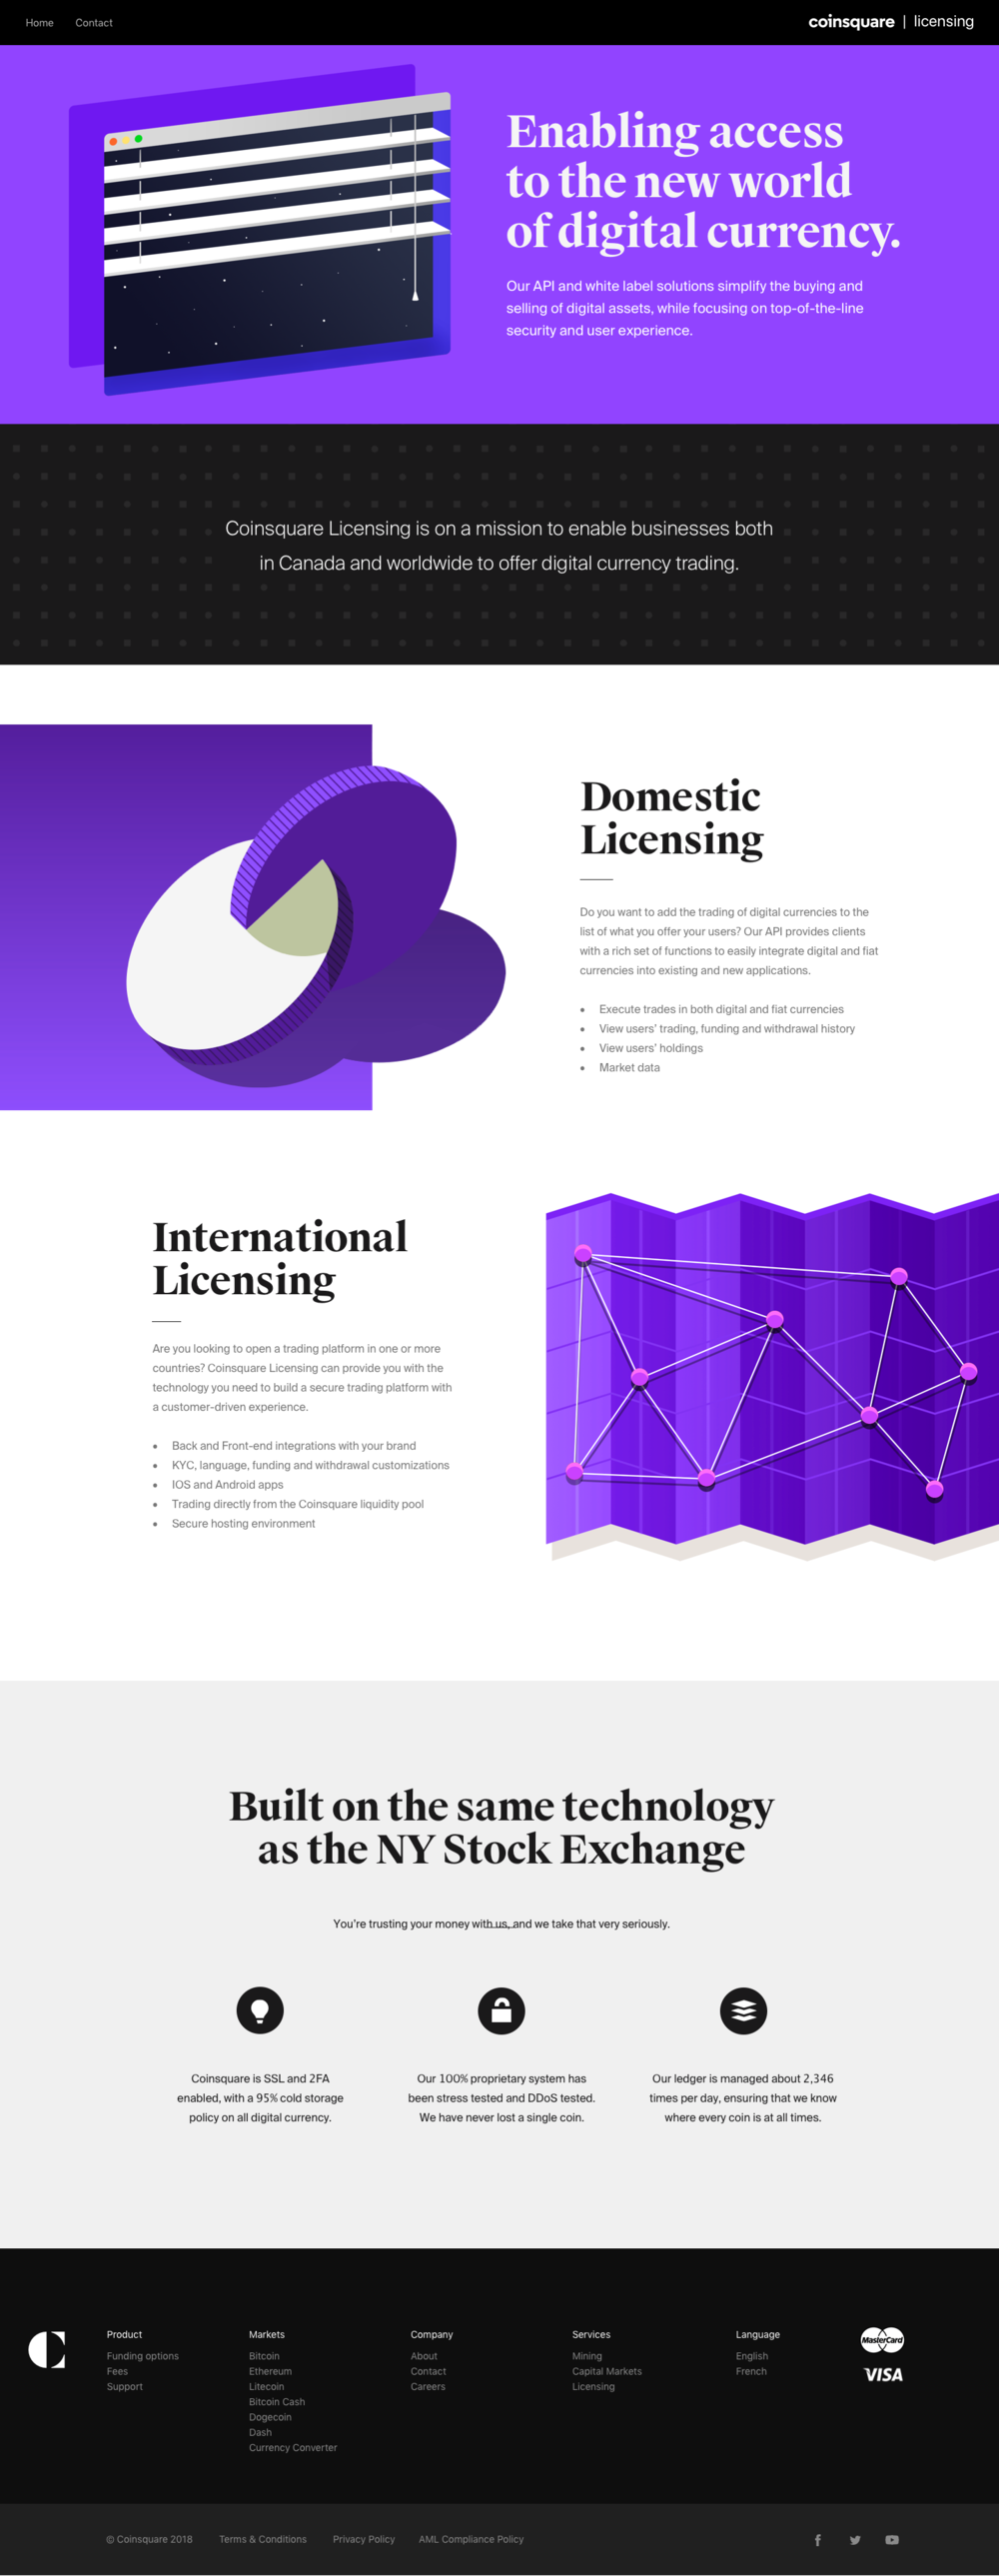 Coinsquare Licensing@1x.png